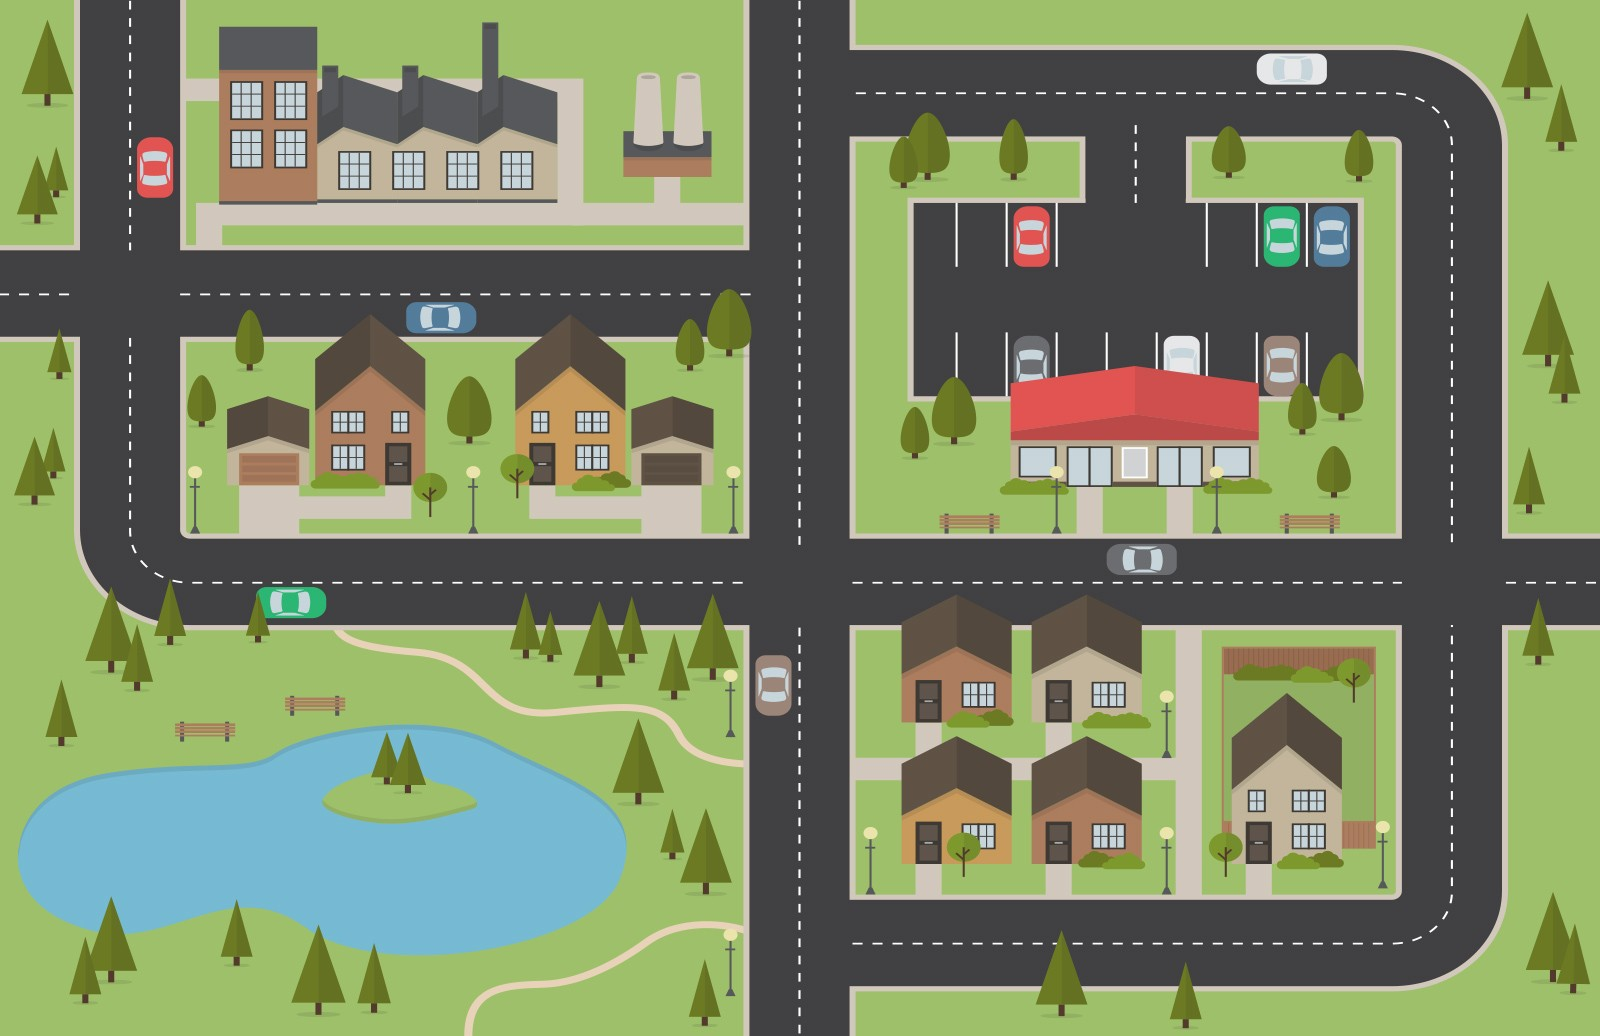 free vector city map layout � medialoot